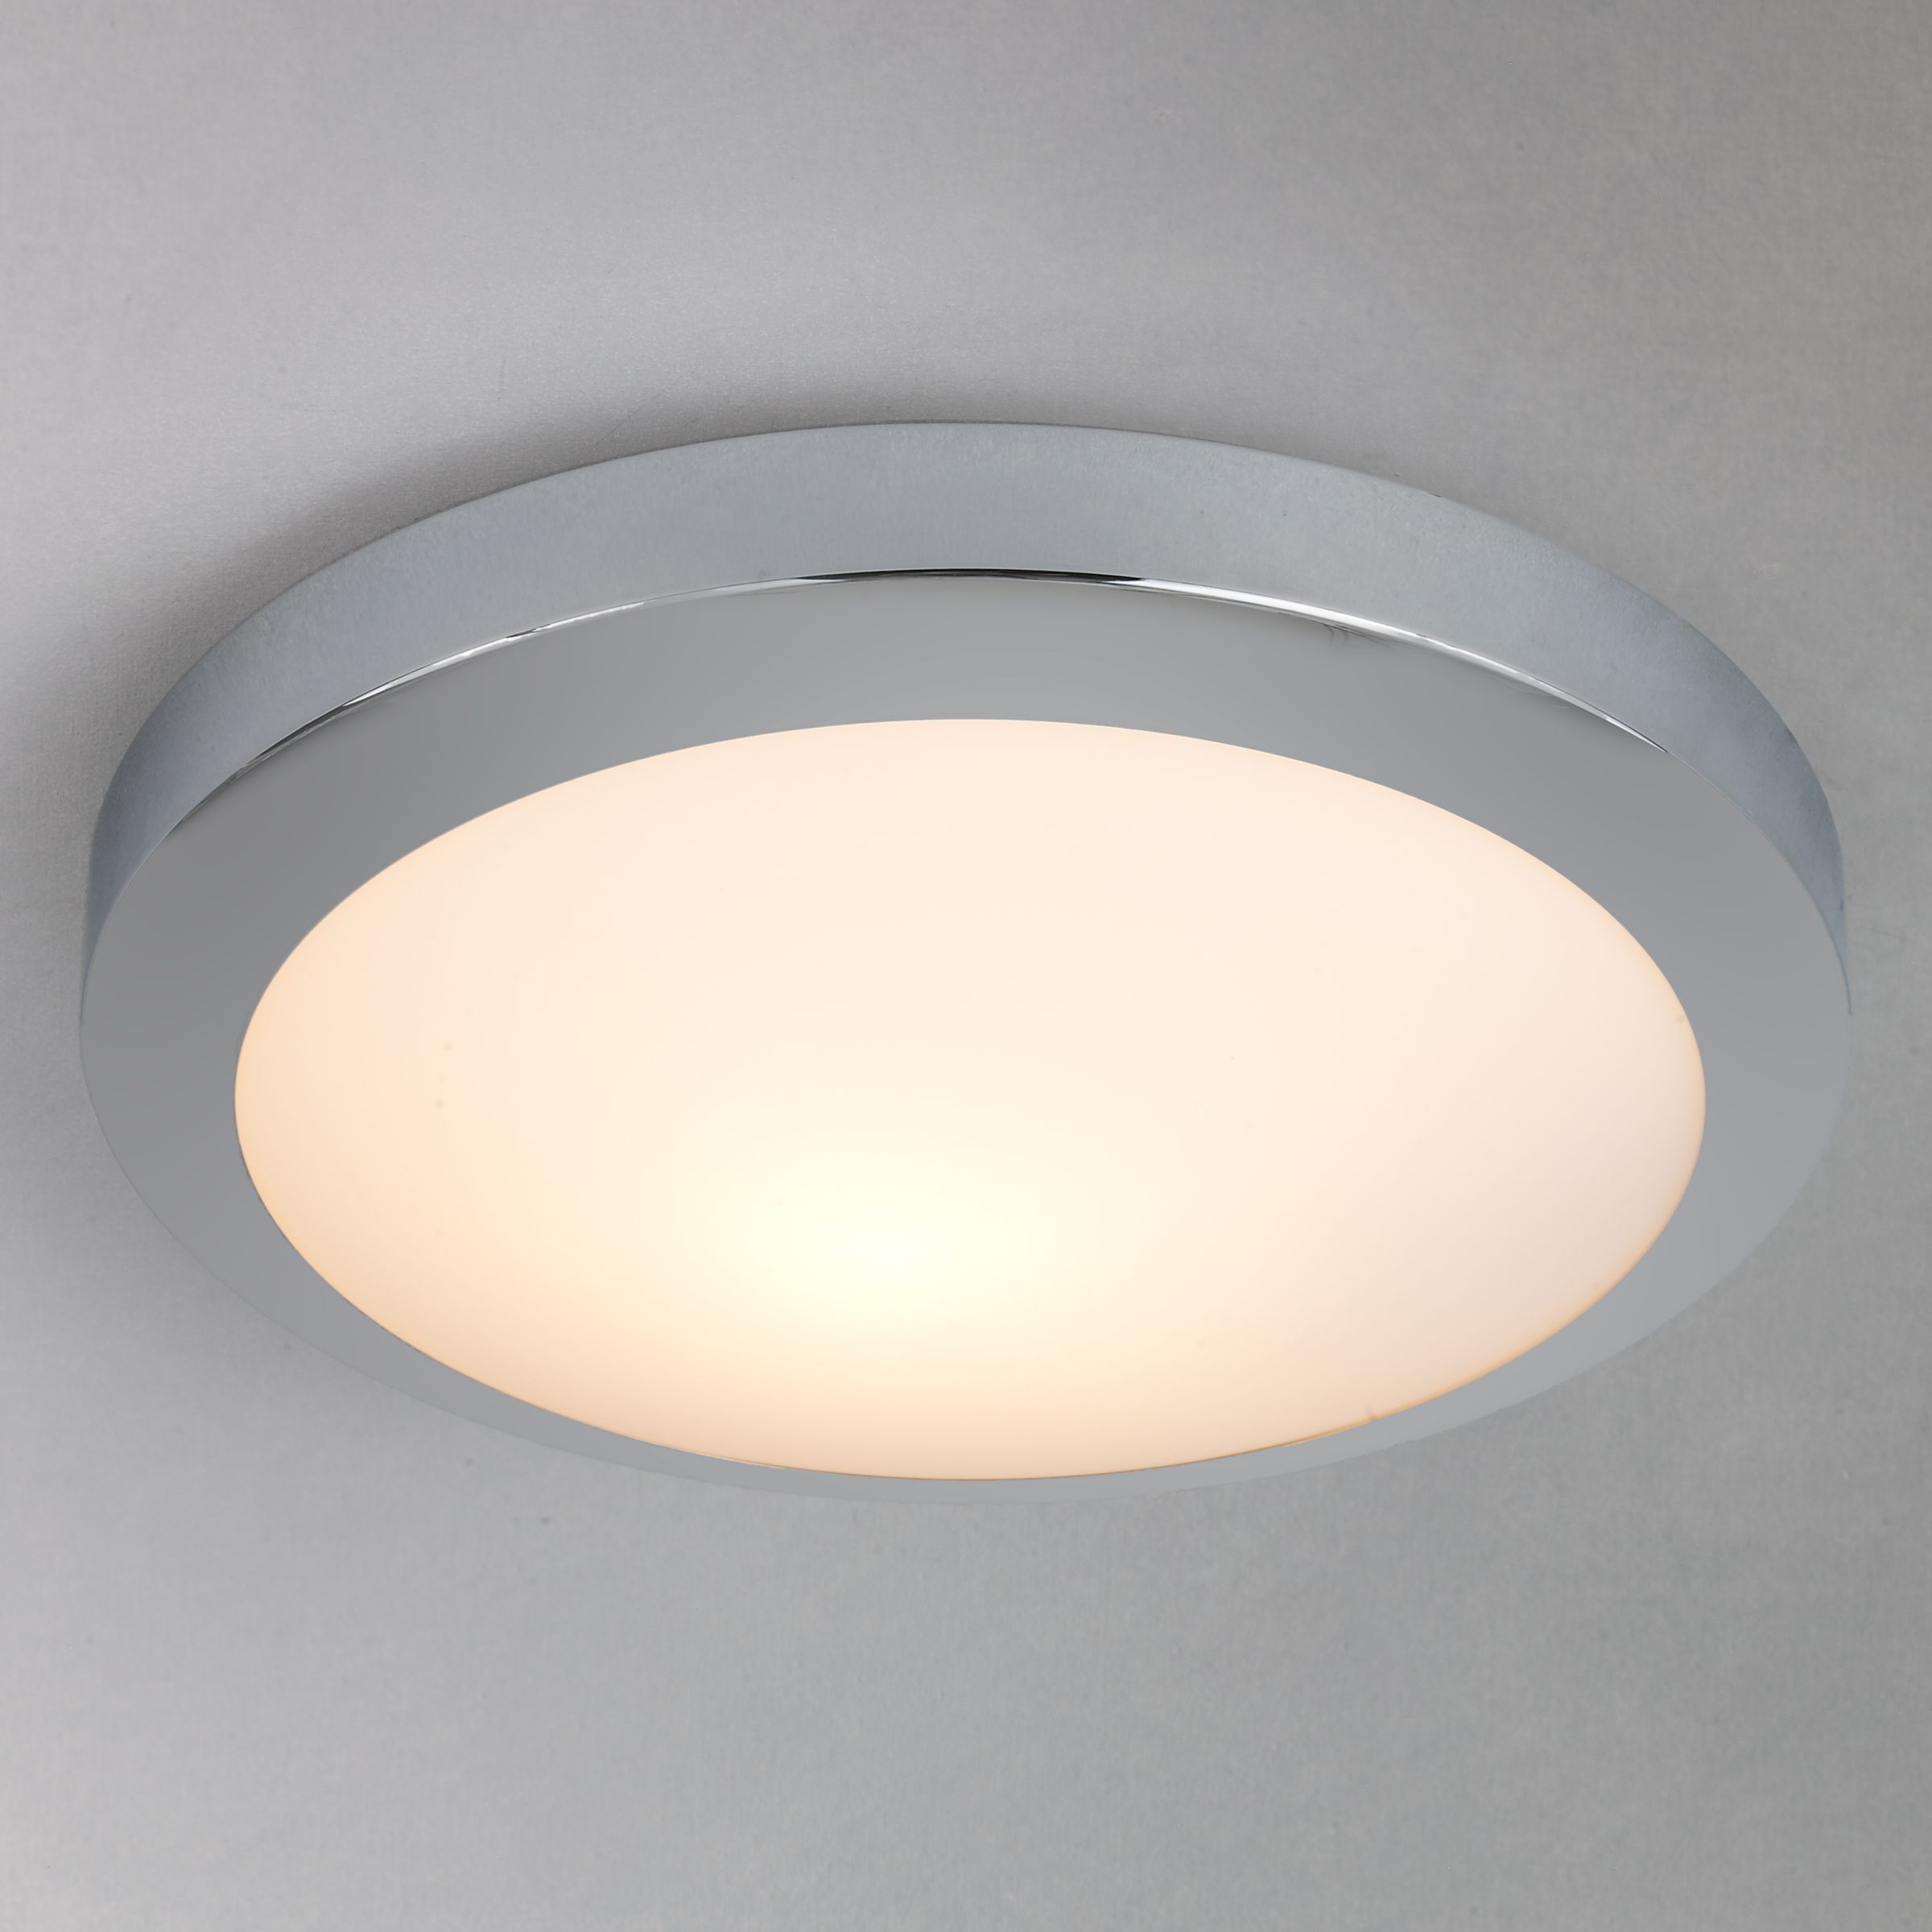 Ceiling Light Fittings At John Lewis : John lewis ceiling lights